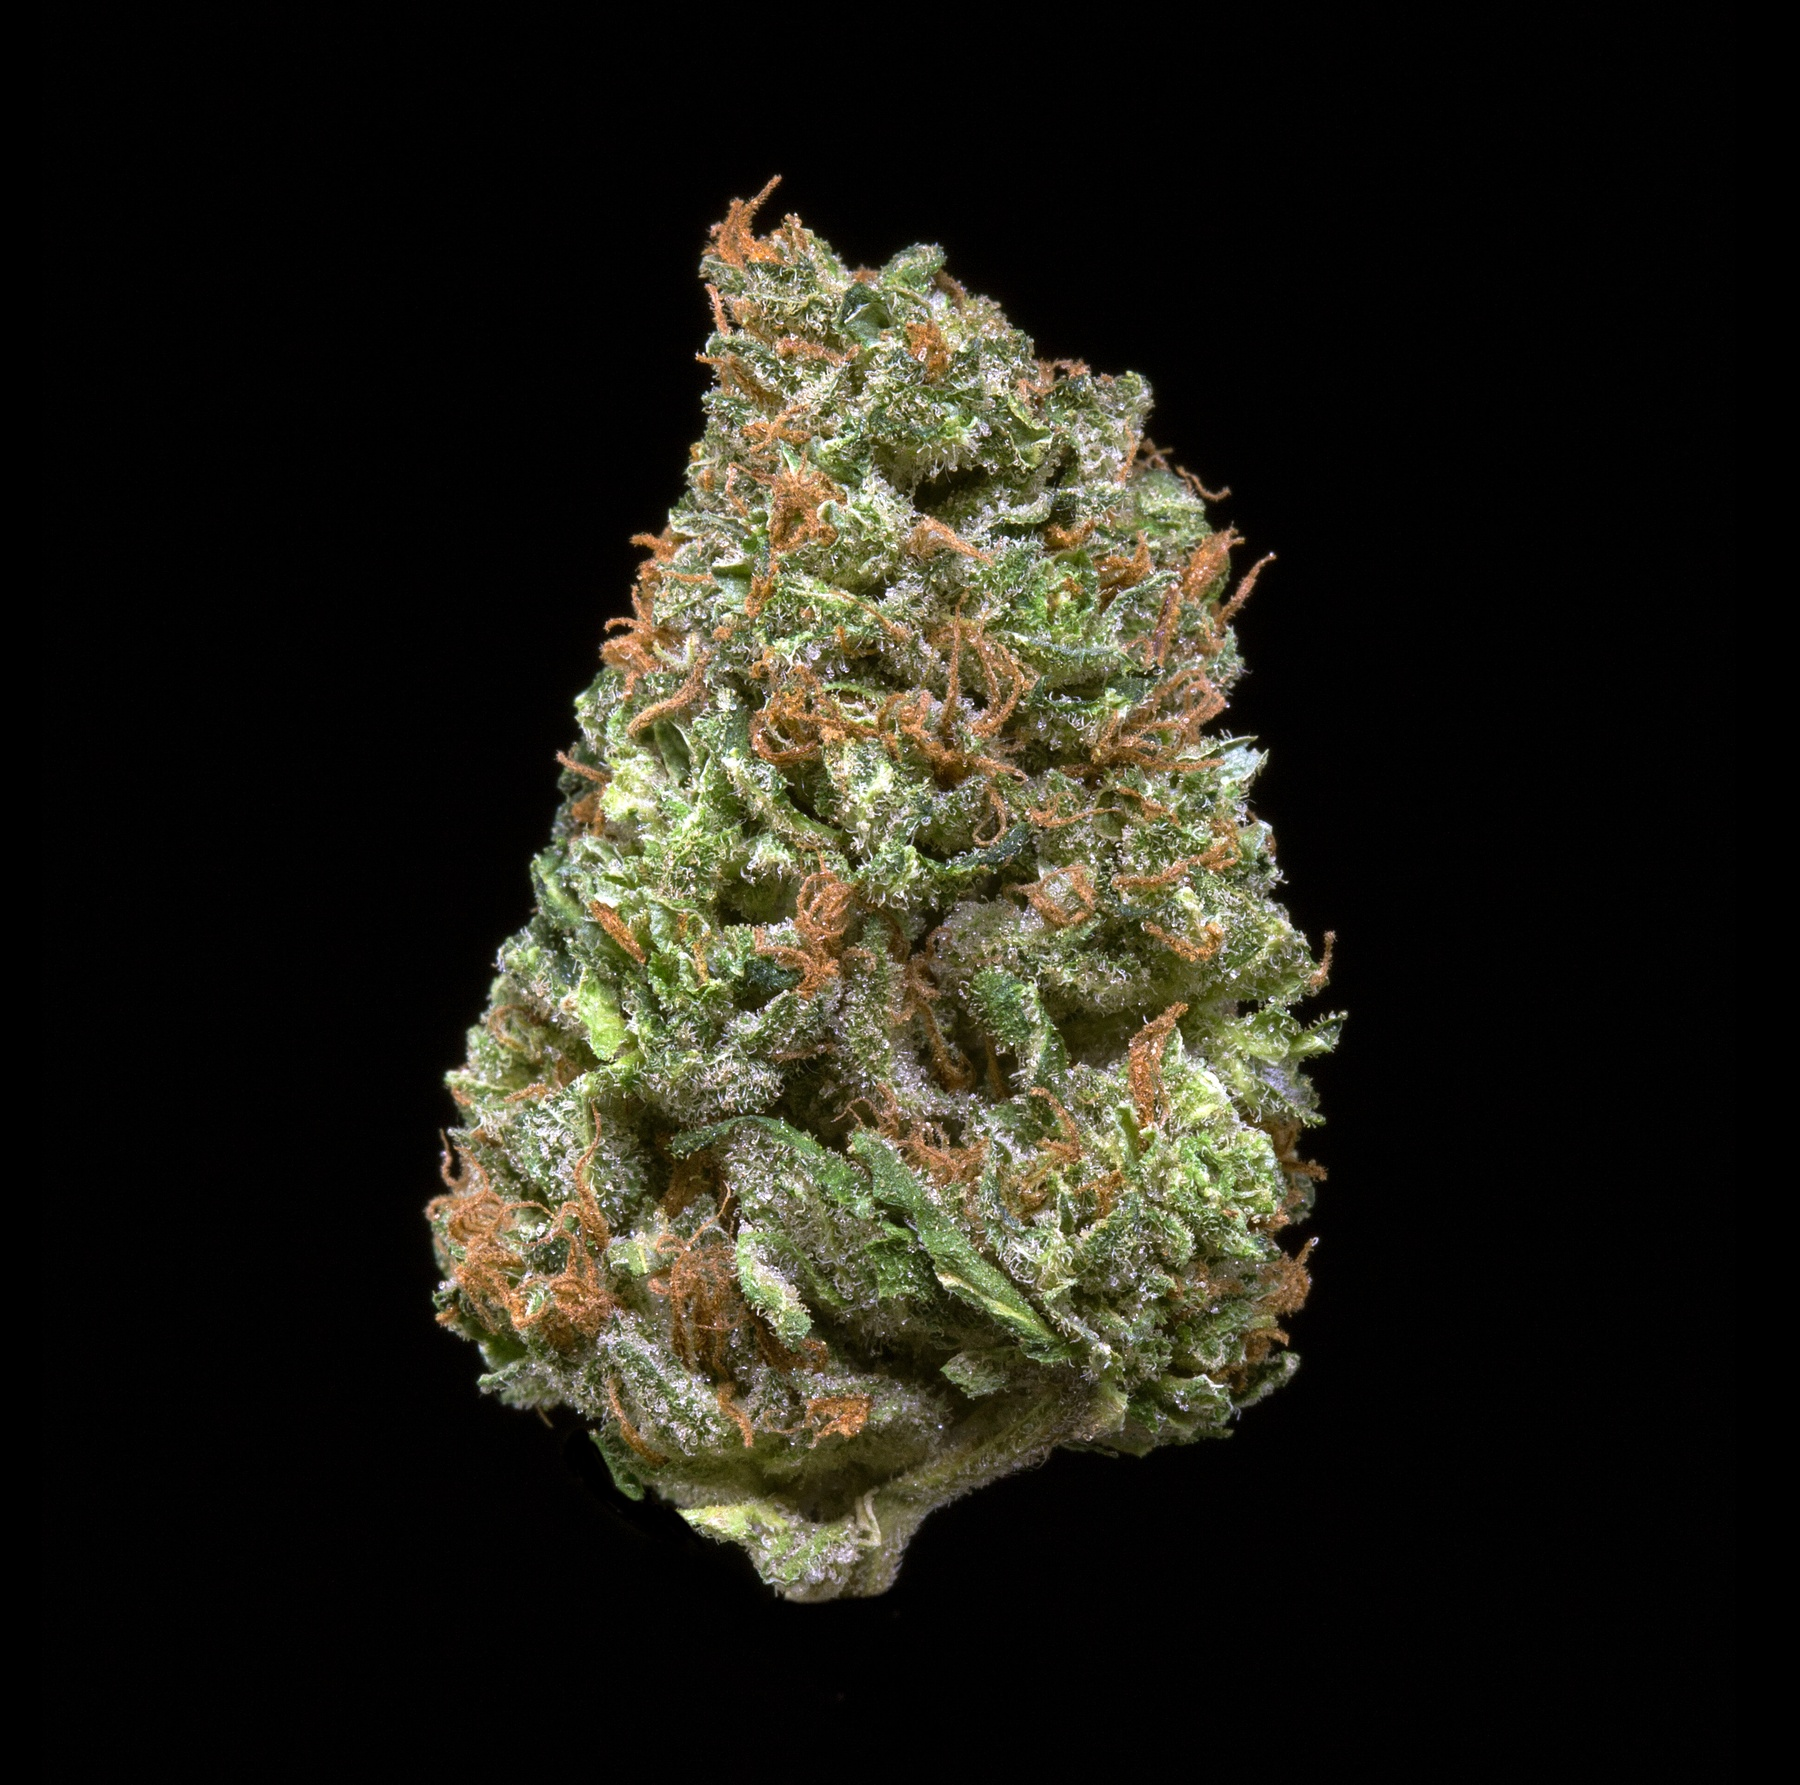 Black Triangle Kush (AU Limit: 3.5g Flower and 3.5g Shake and 10 - 0.75 pre rolls / No Med Limit) Product image